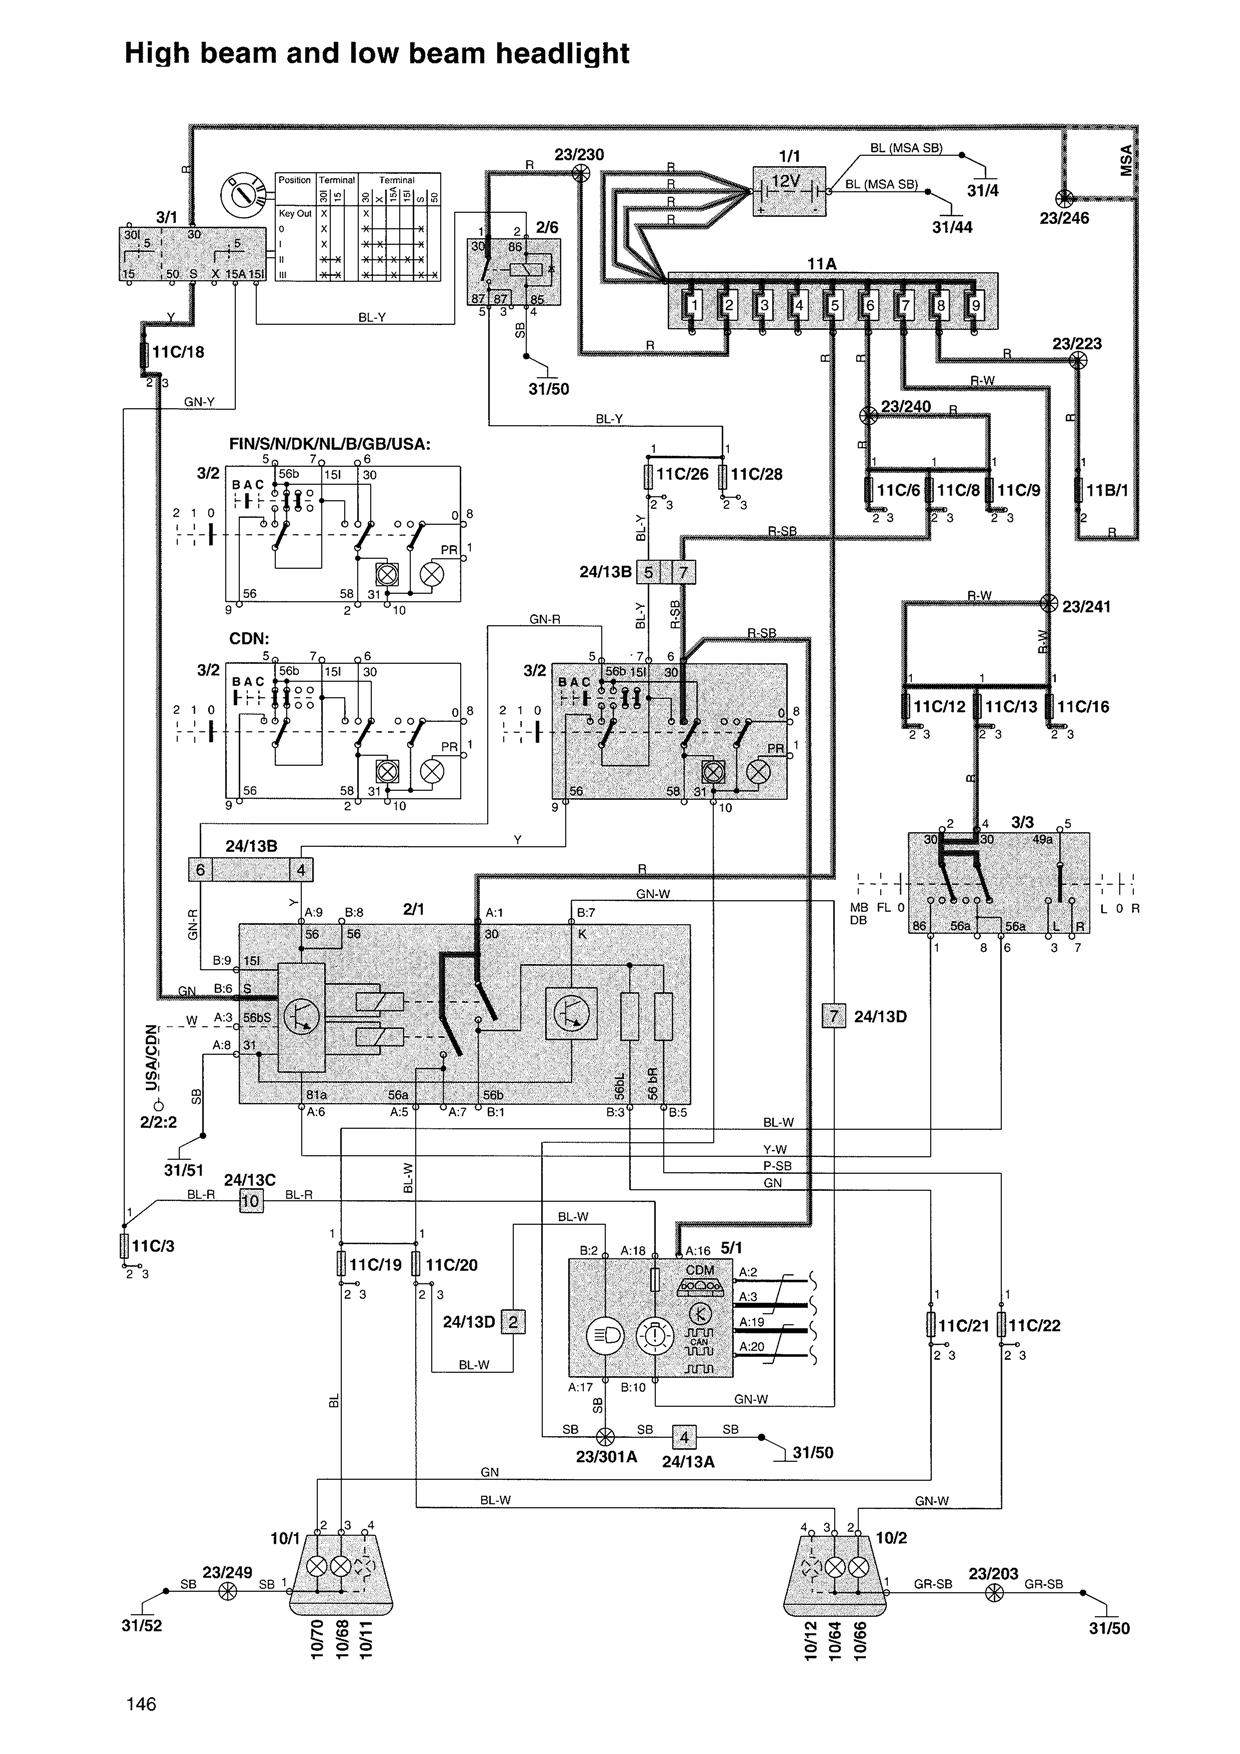 excellent wiring diagram for headlights 2005 volvo xc90 2004 volvo xc90 wiring diagram 2005 volvo xc90 fuel pump wiring diagram